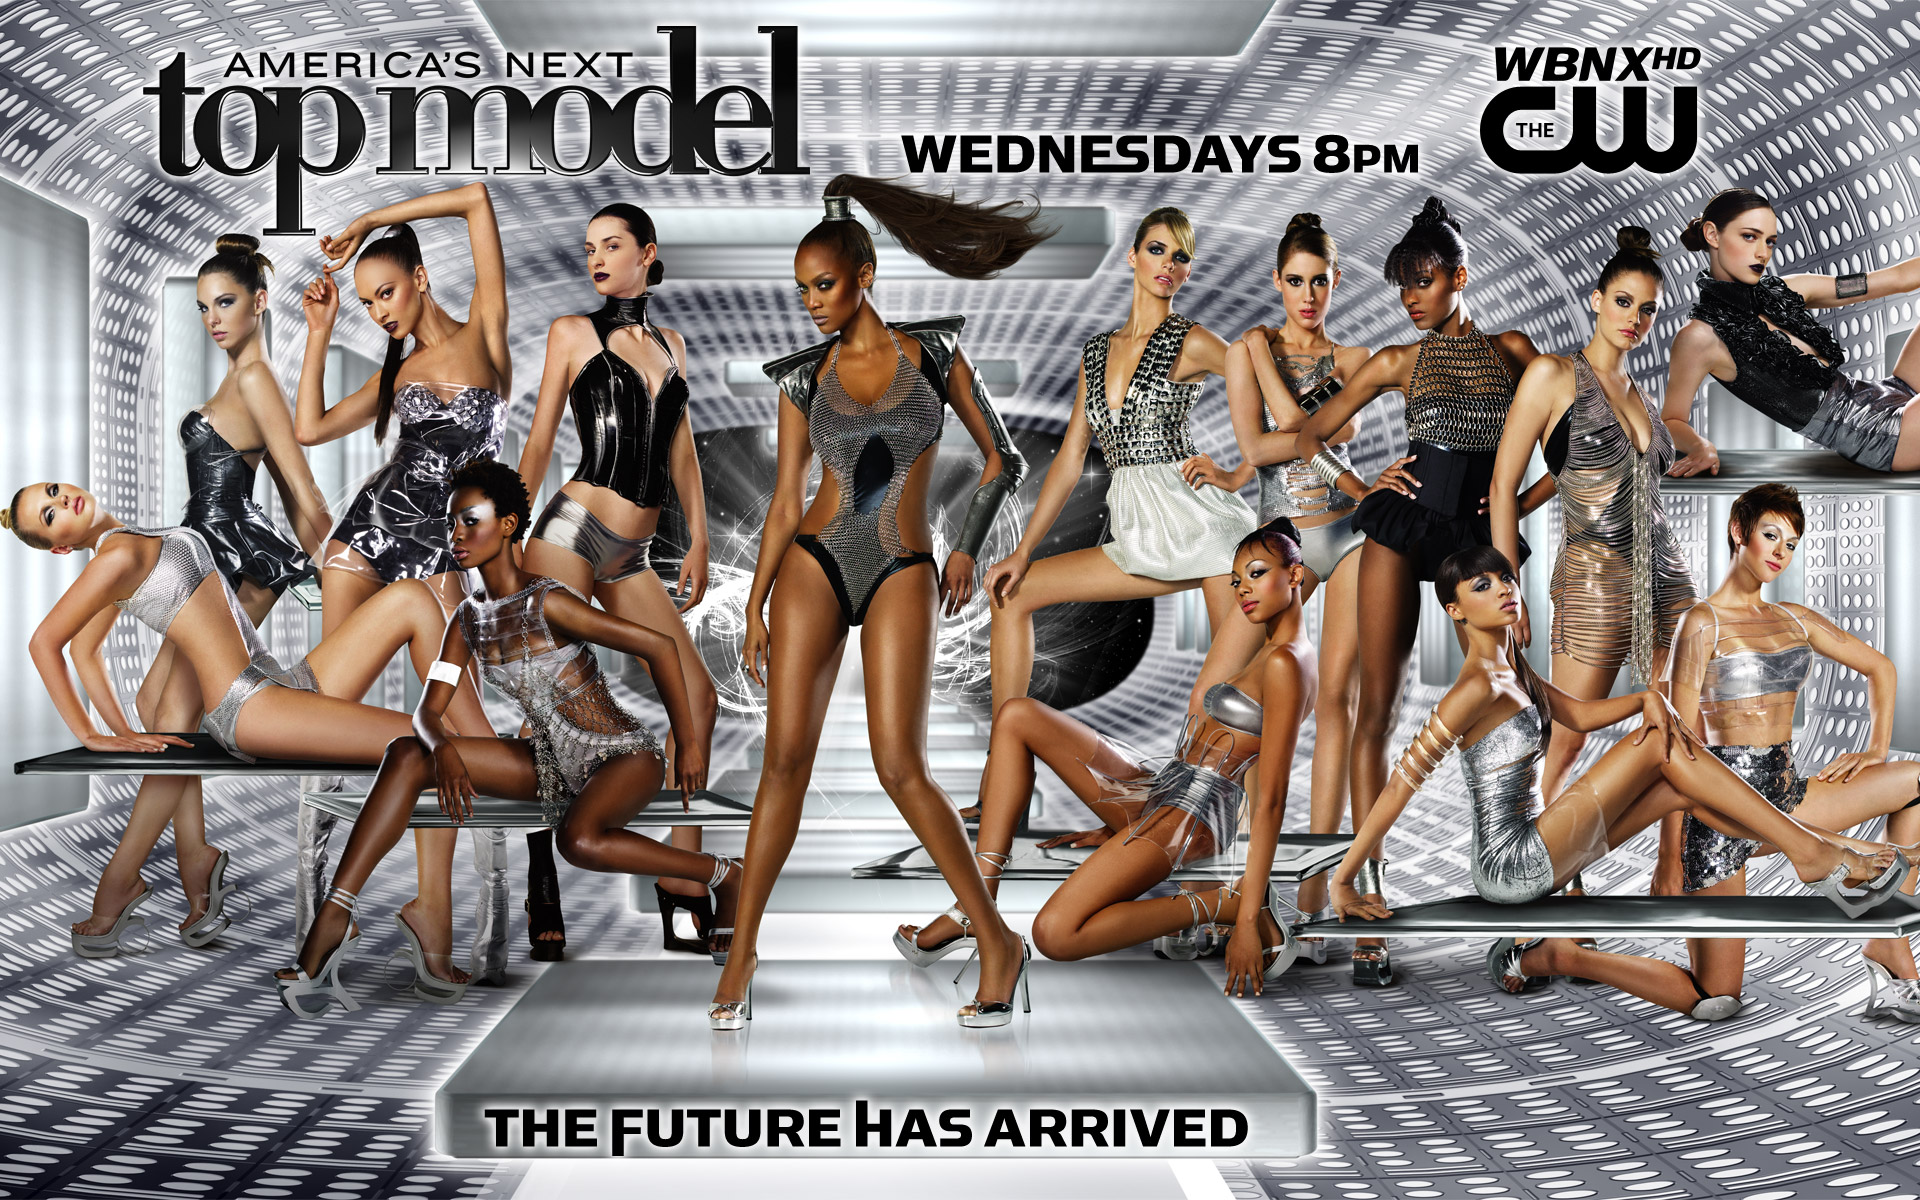 America's Next Top Model: Season 9